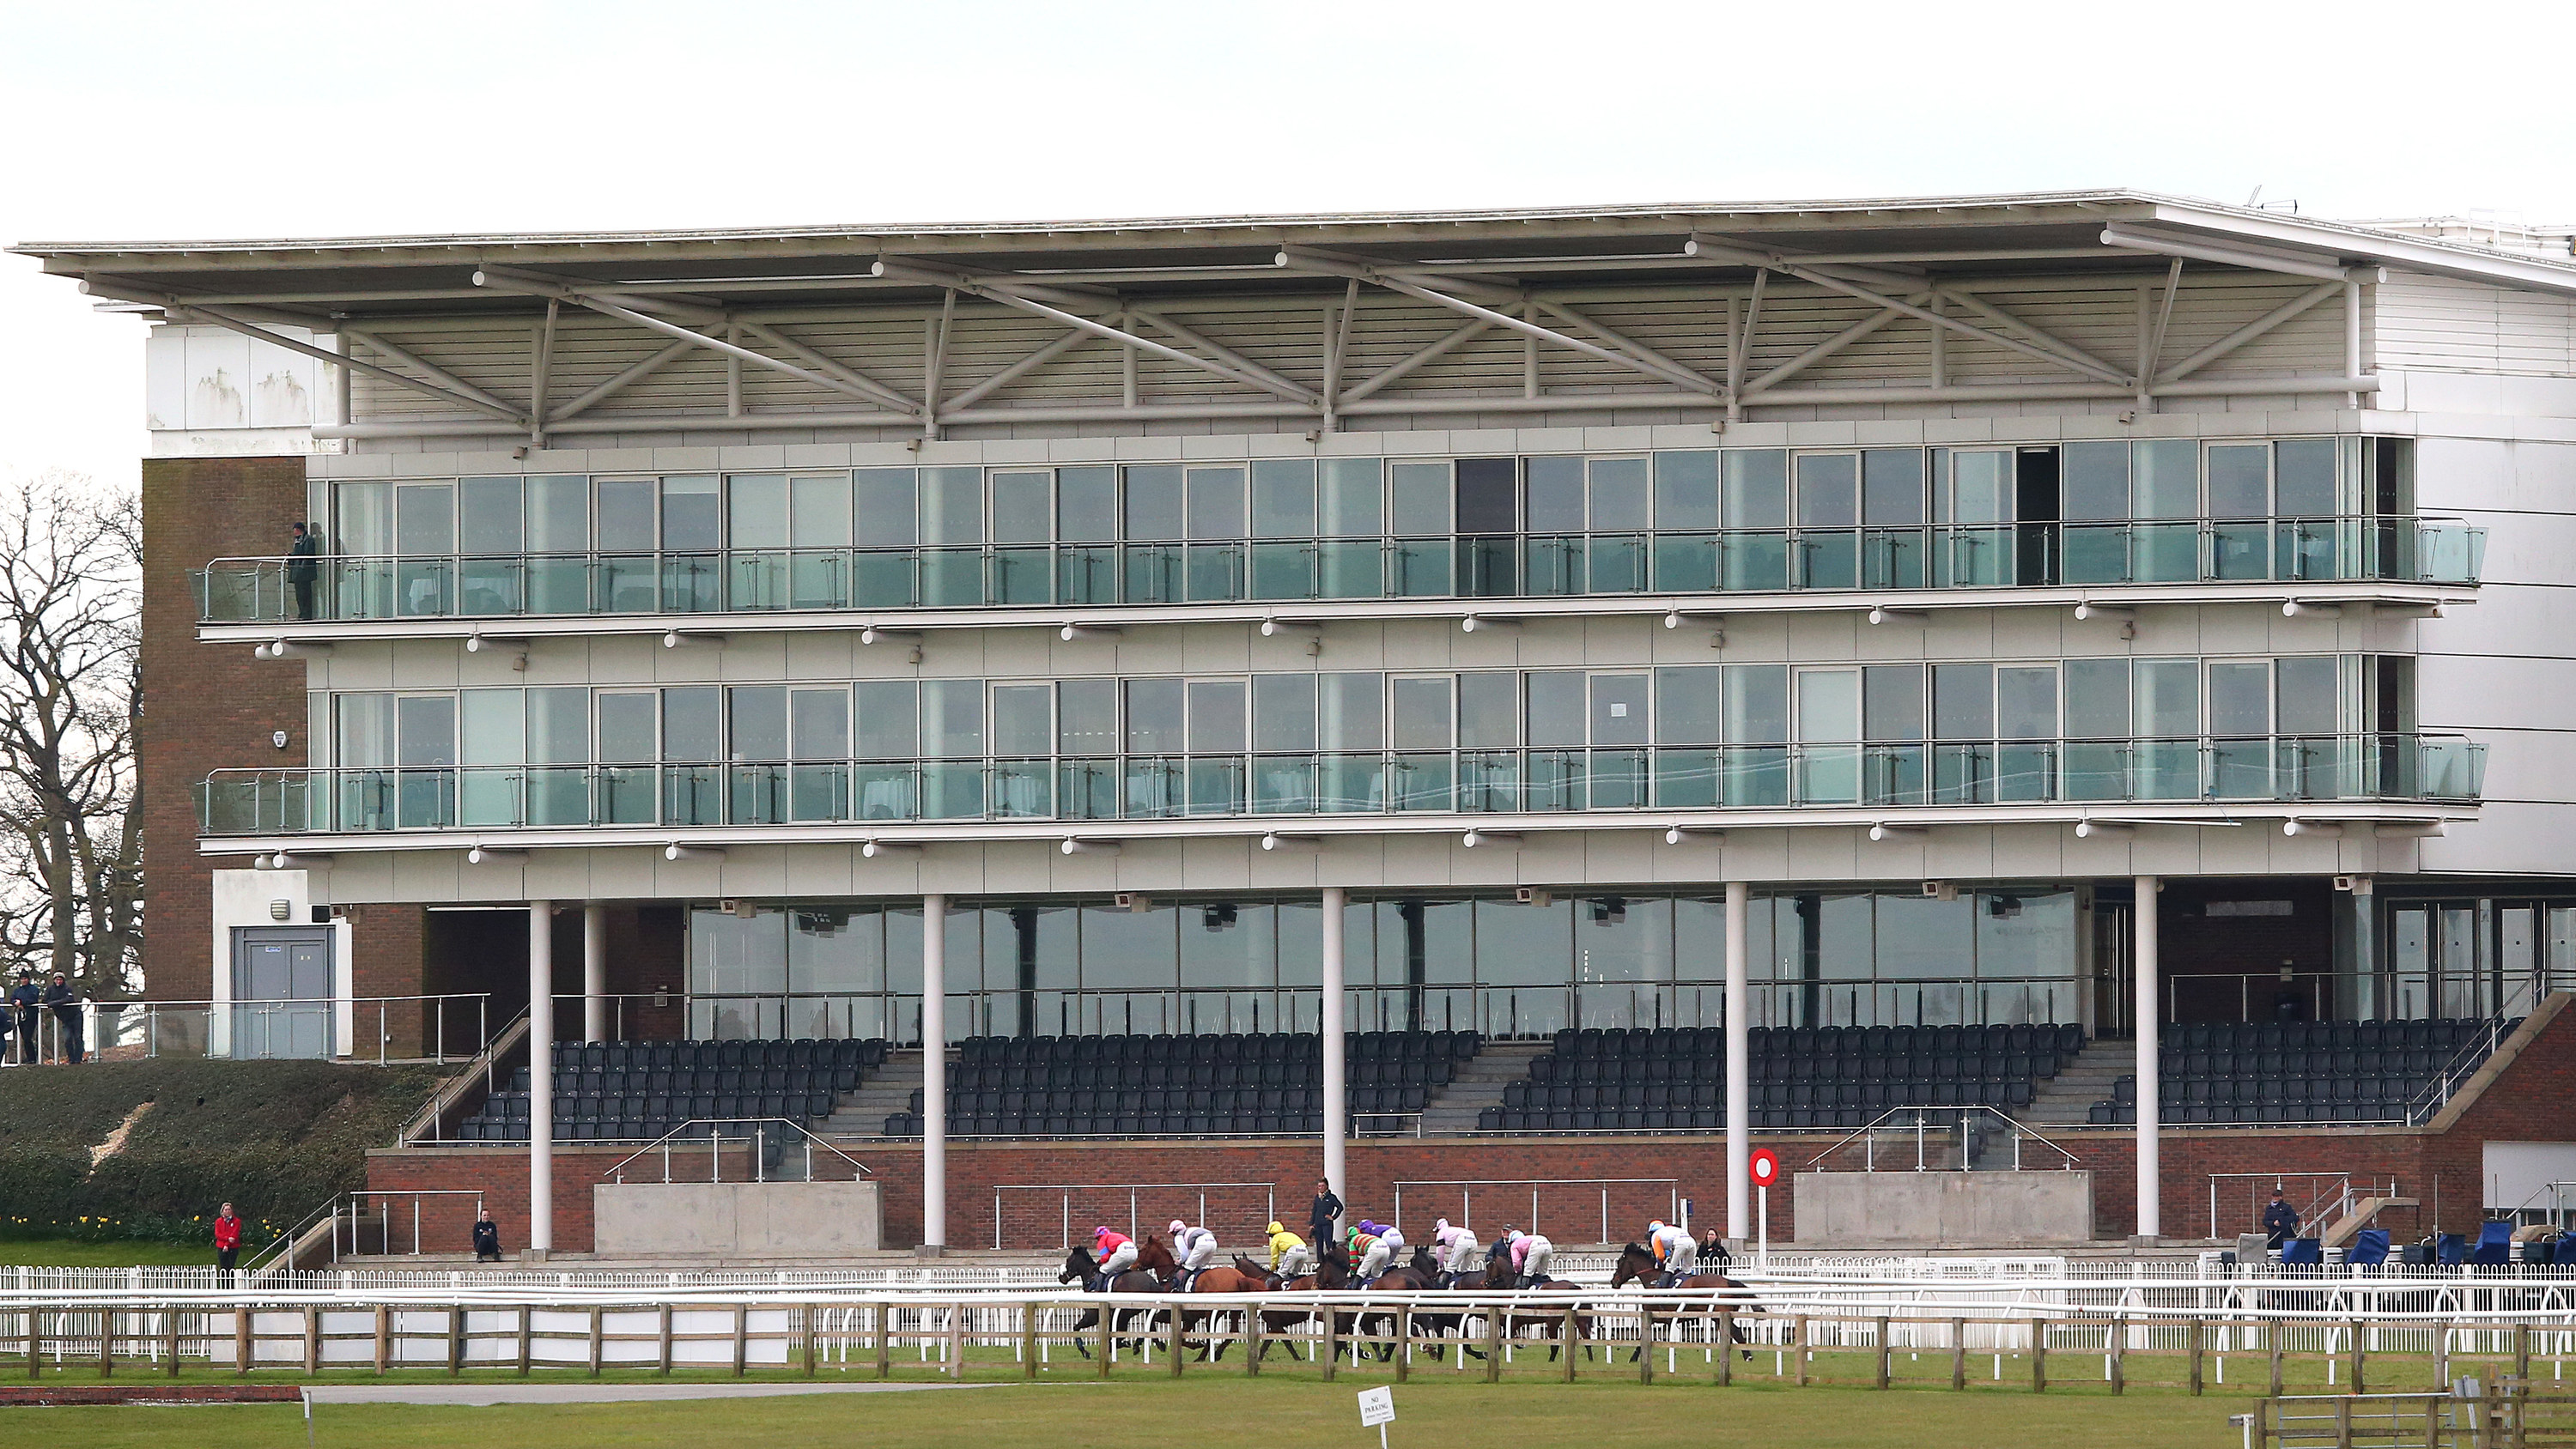 Empty stands are seen as horses and riders run past during a race